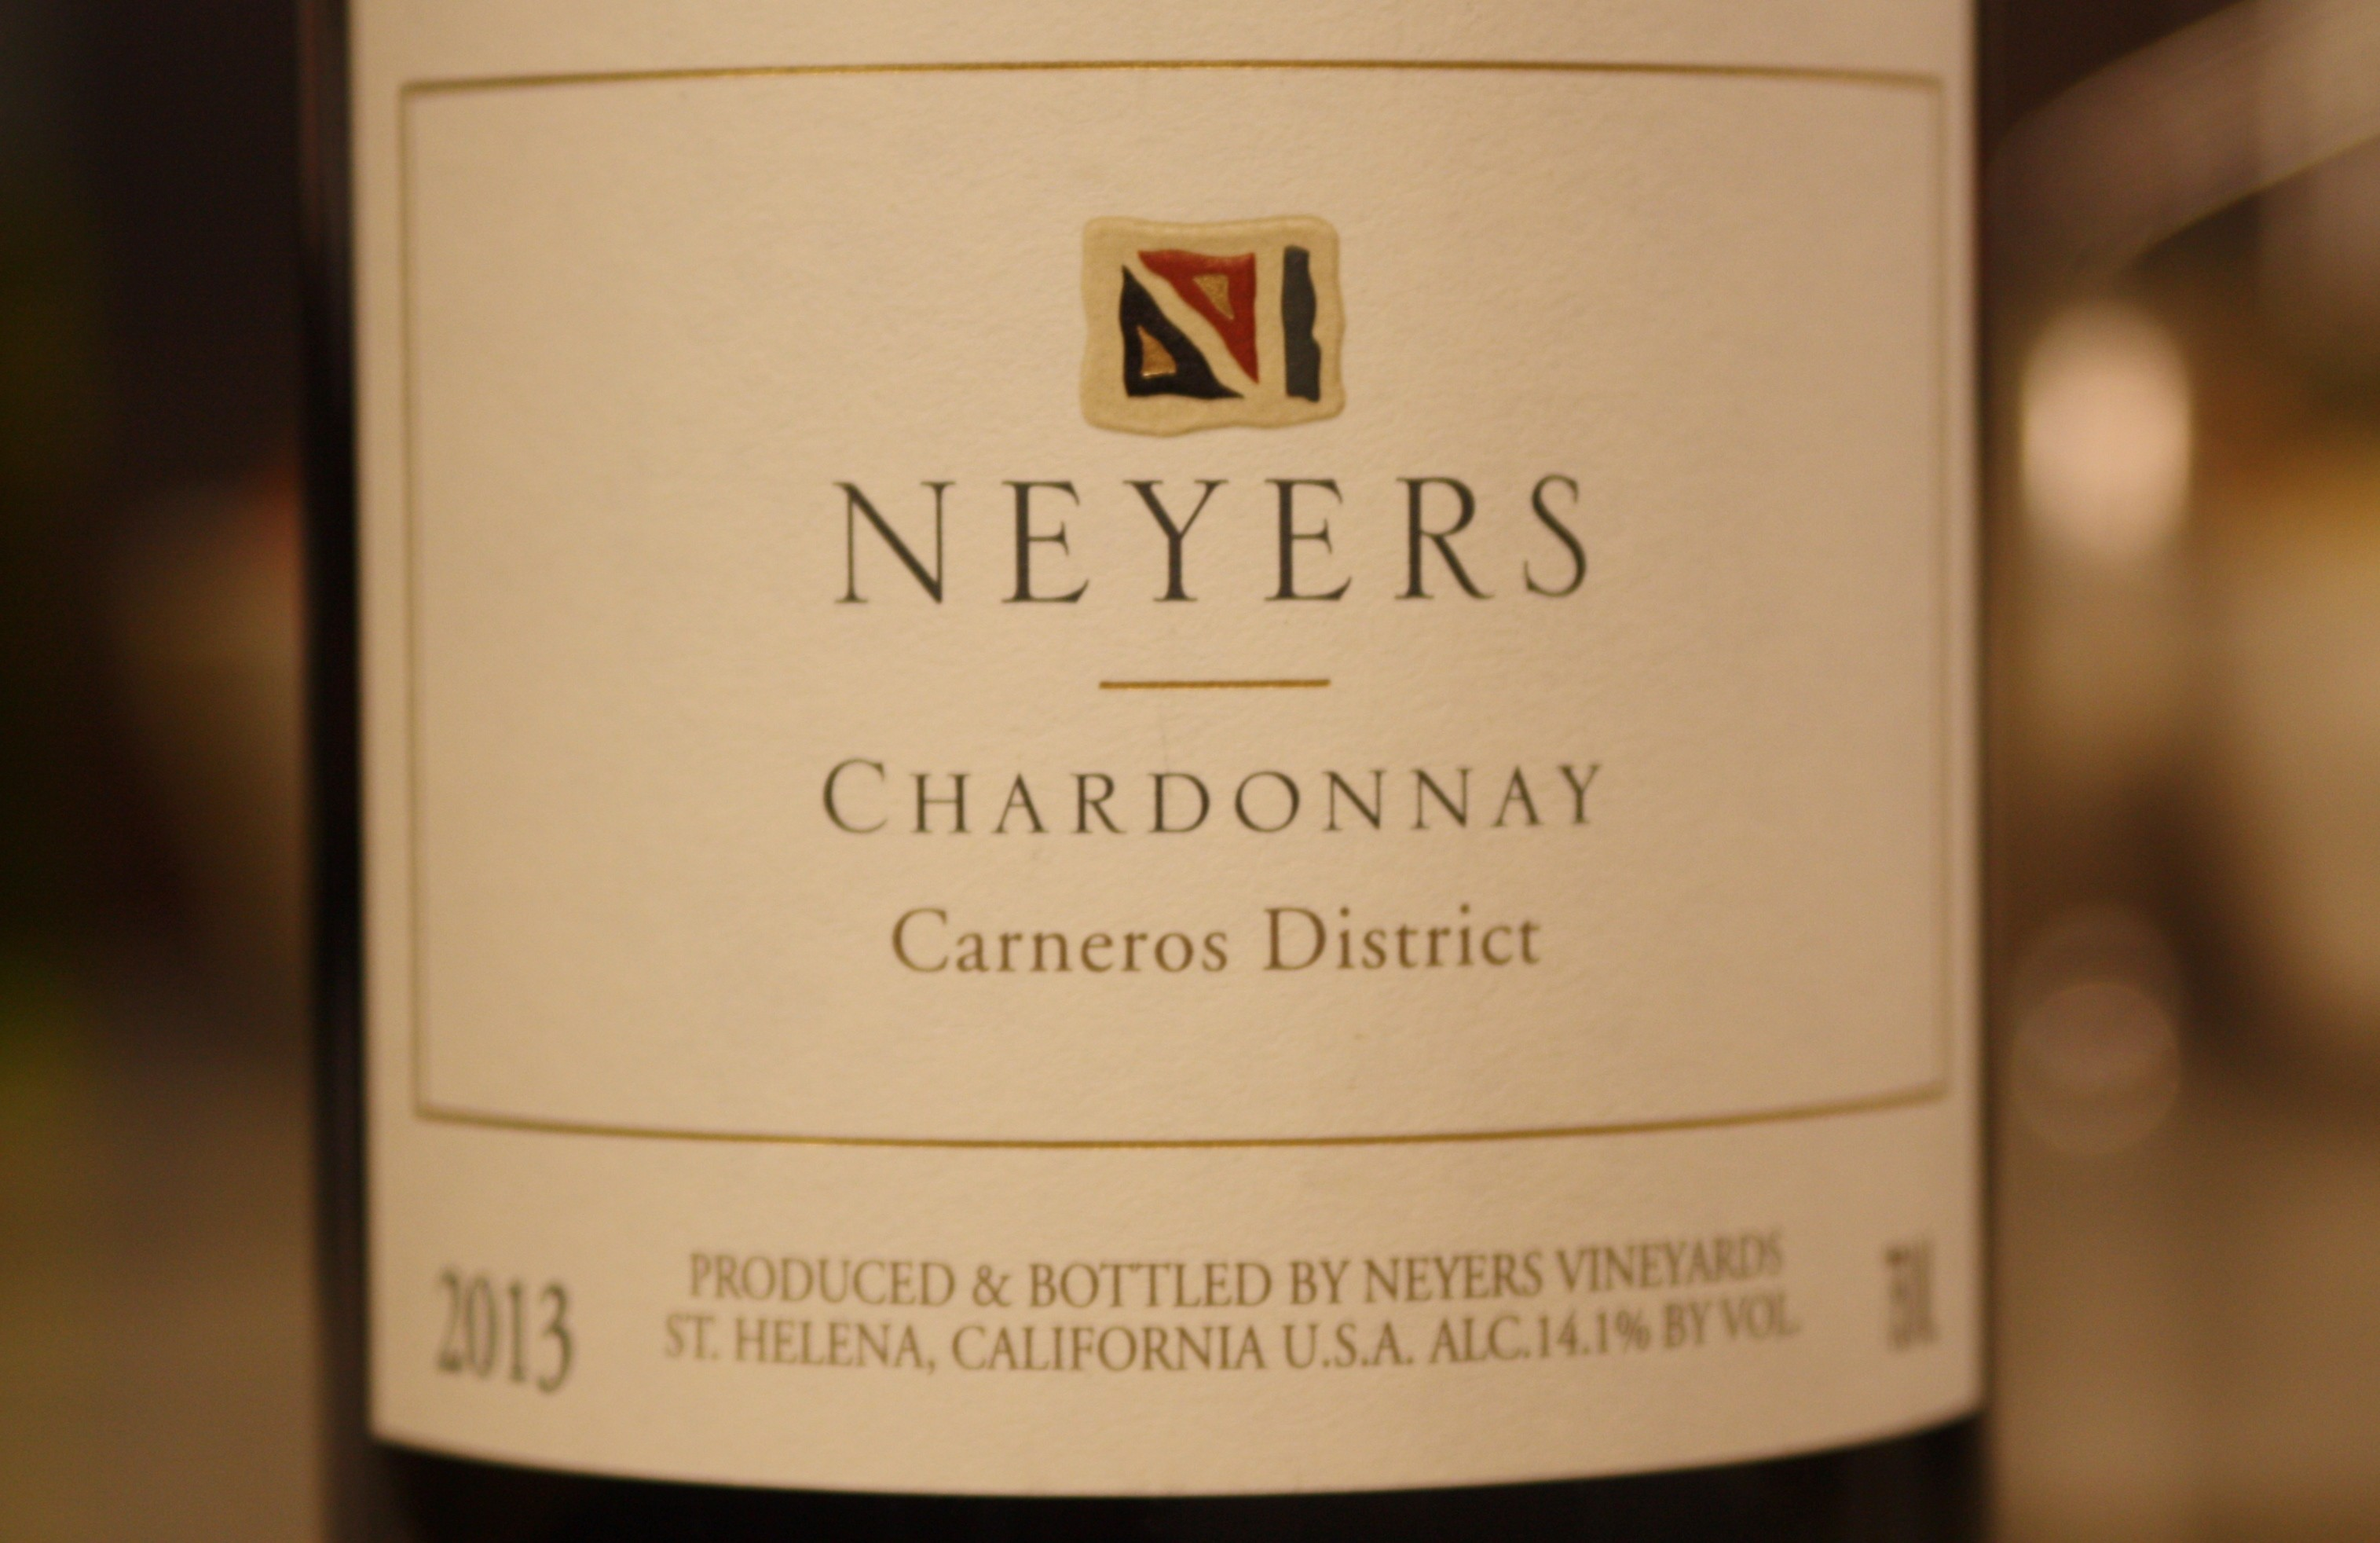 Neyers Vineyards Carneros Chardonnay